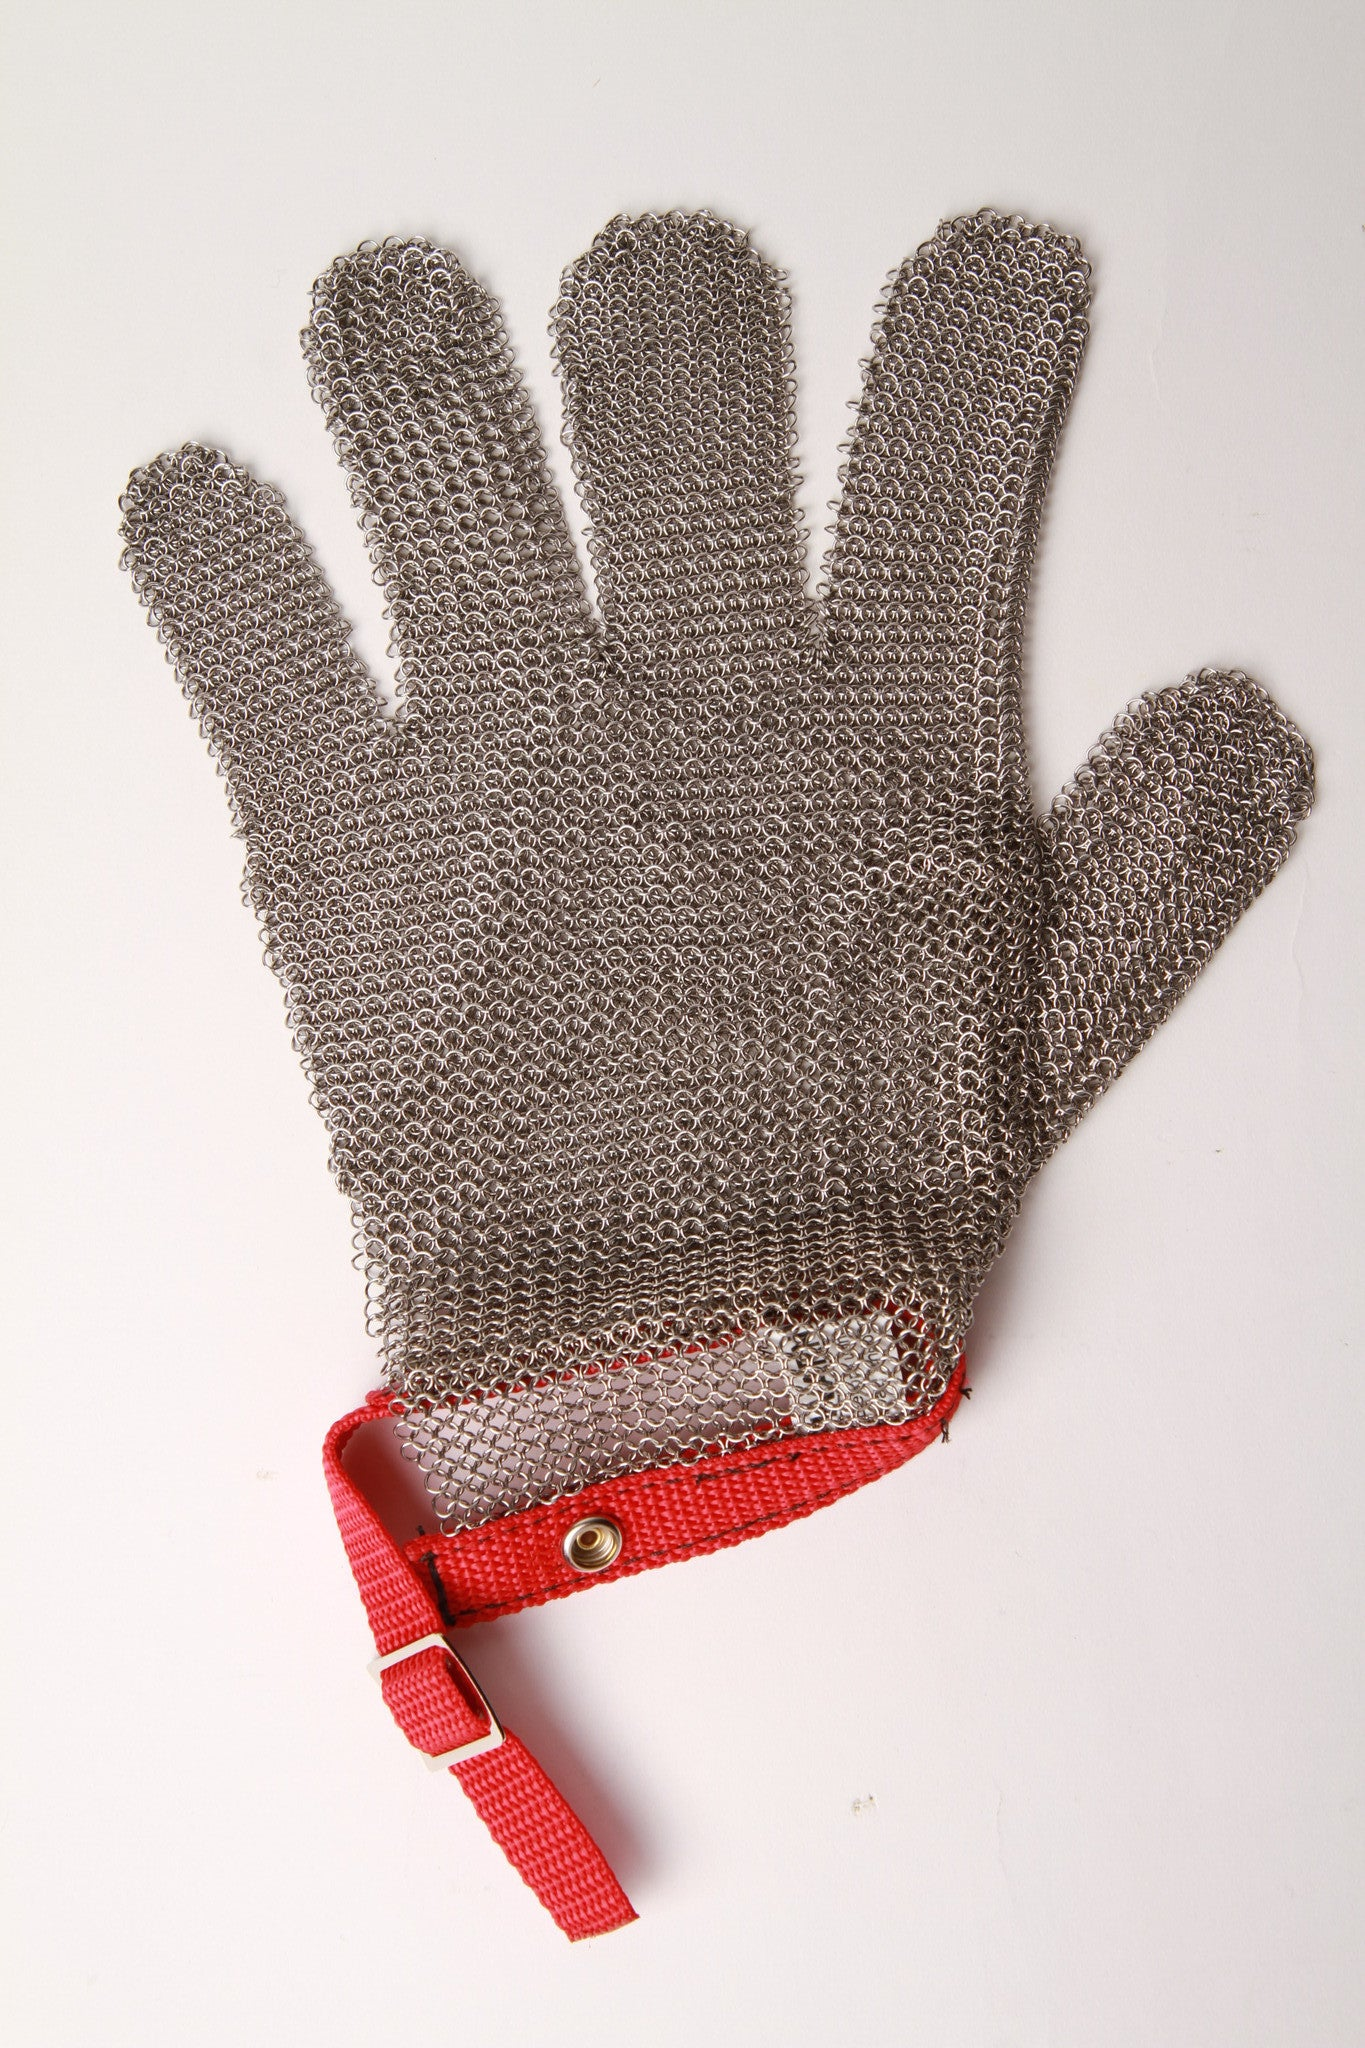 Medium sized left 5 fingers metal mesh glove